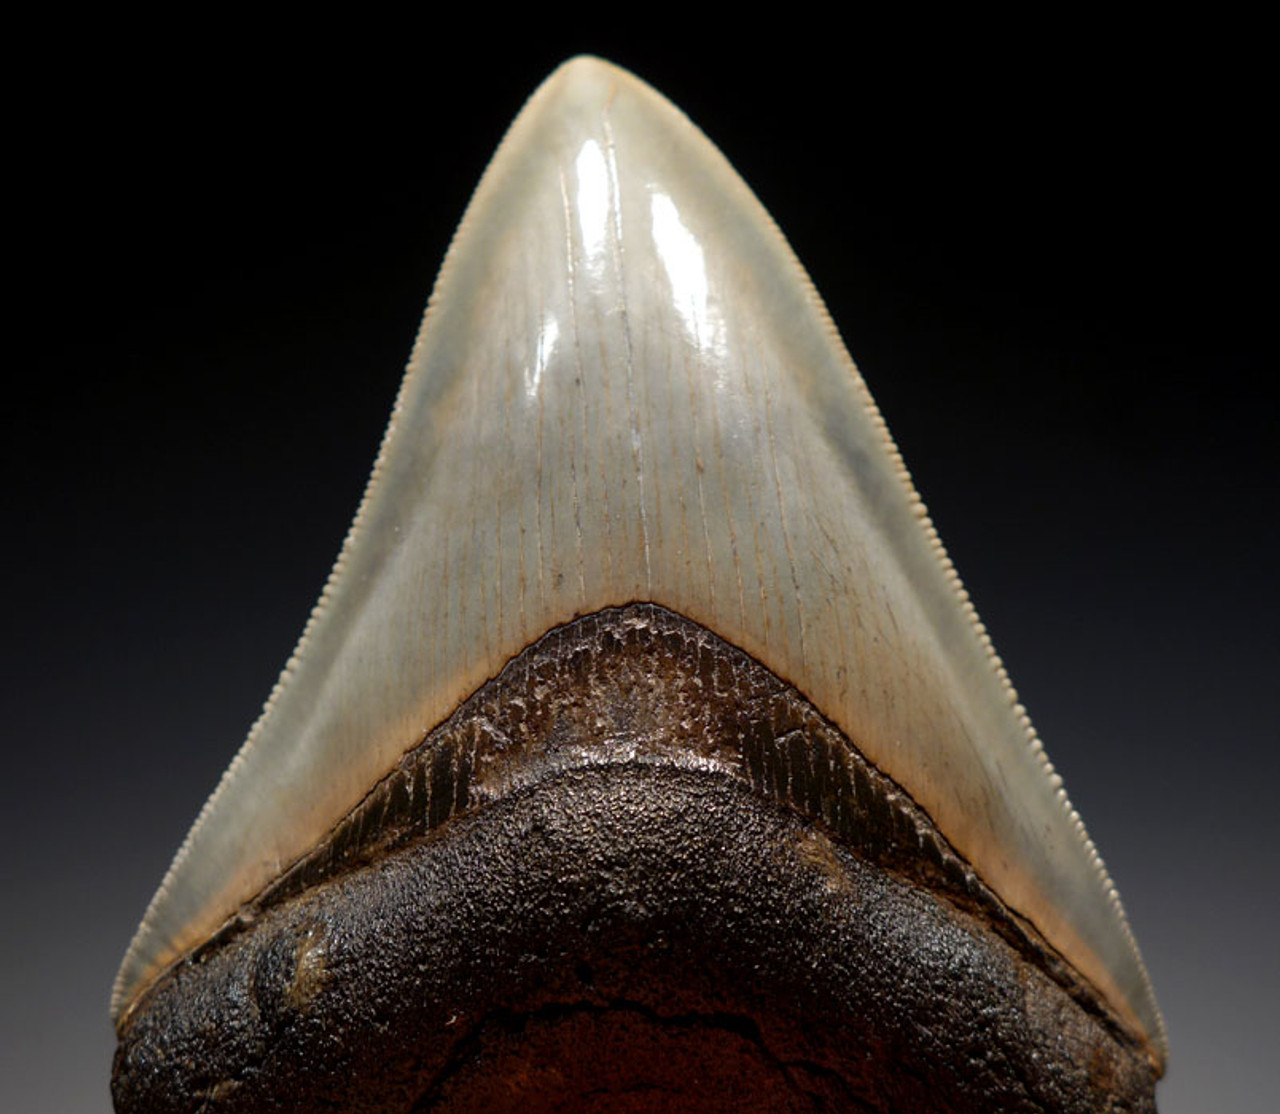 SH6-331 - FINEST GRADE 3.8 INCH MEGALODON SHARK TOOTH WITH COLORFUL ENAMEL